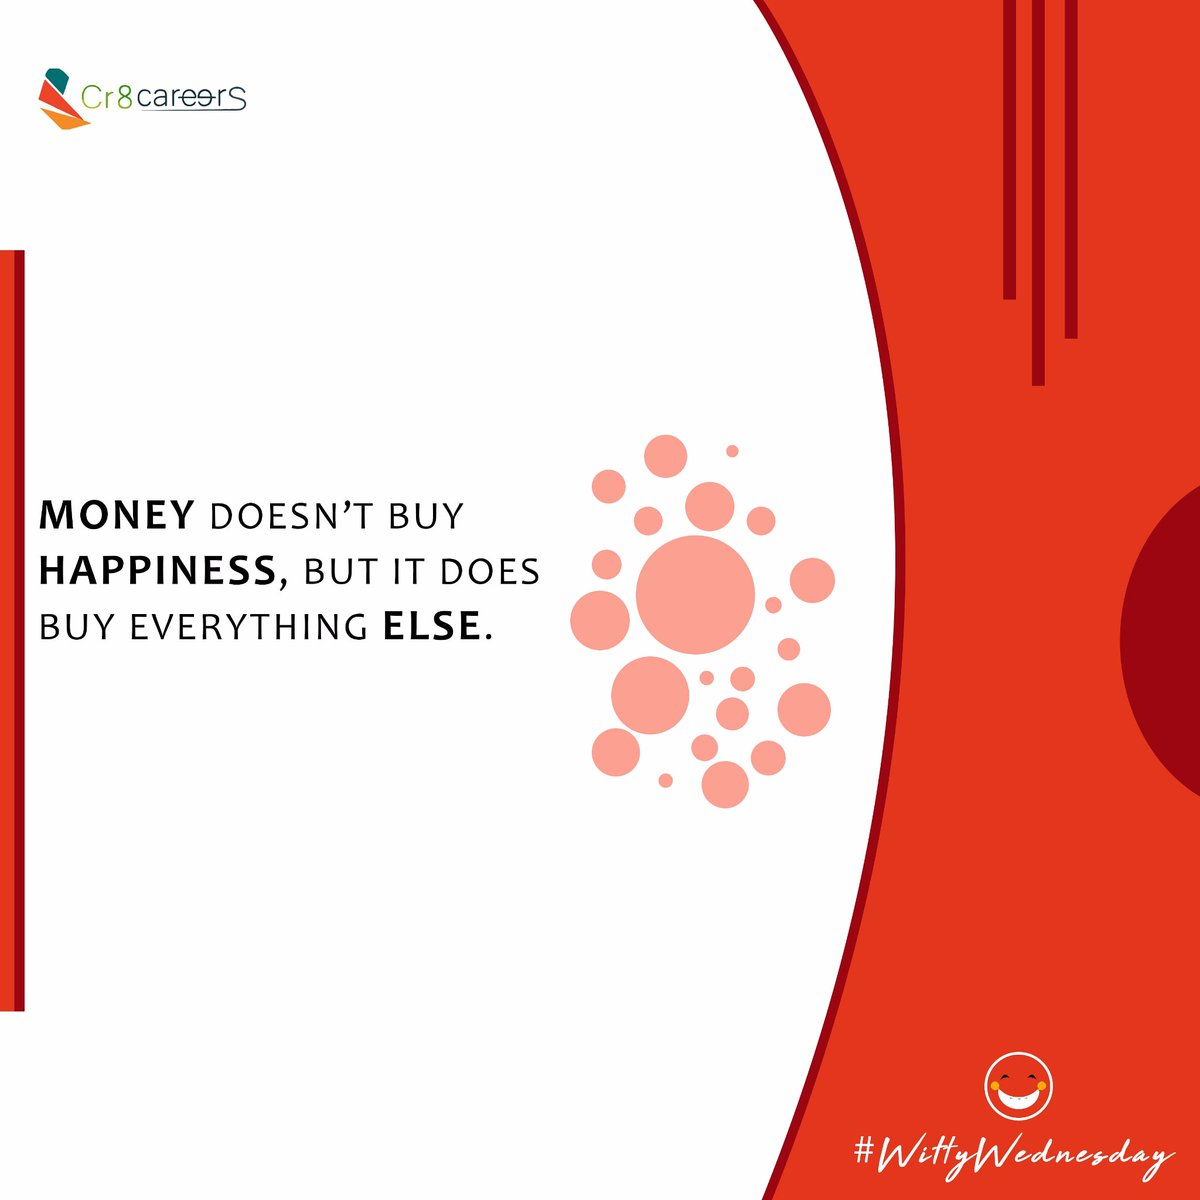 Money Doesn't Buy Happiness  #WittyWednesday . Follow Us Today To Stay Connected To Our Services @Cr8careers . #Recruitment #Outsourcing #Assessments #OccupationalInterests #HRNigeria #CreativeBusinessOwner #CreativeHappyLife #CreativeBiz #wednesday #weds #happy #wittypic.twitter.com/dWPjuh1HPW